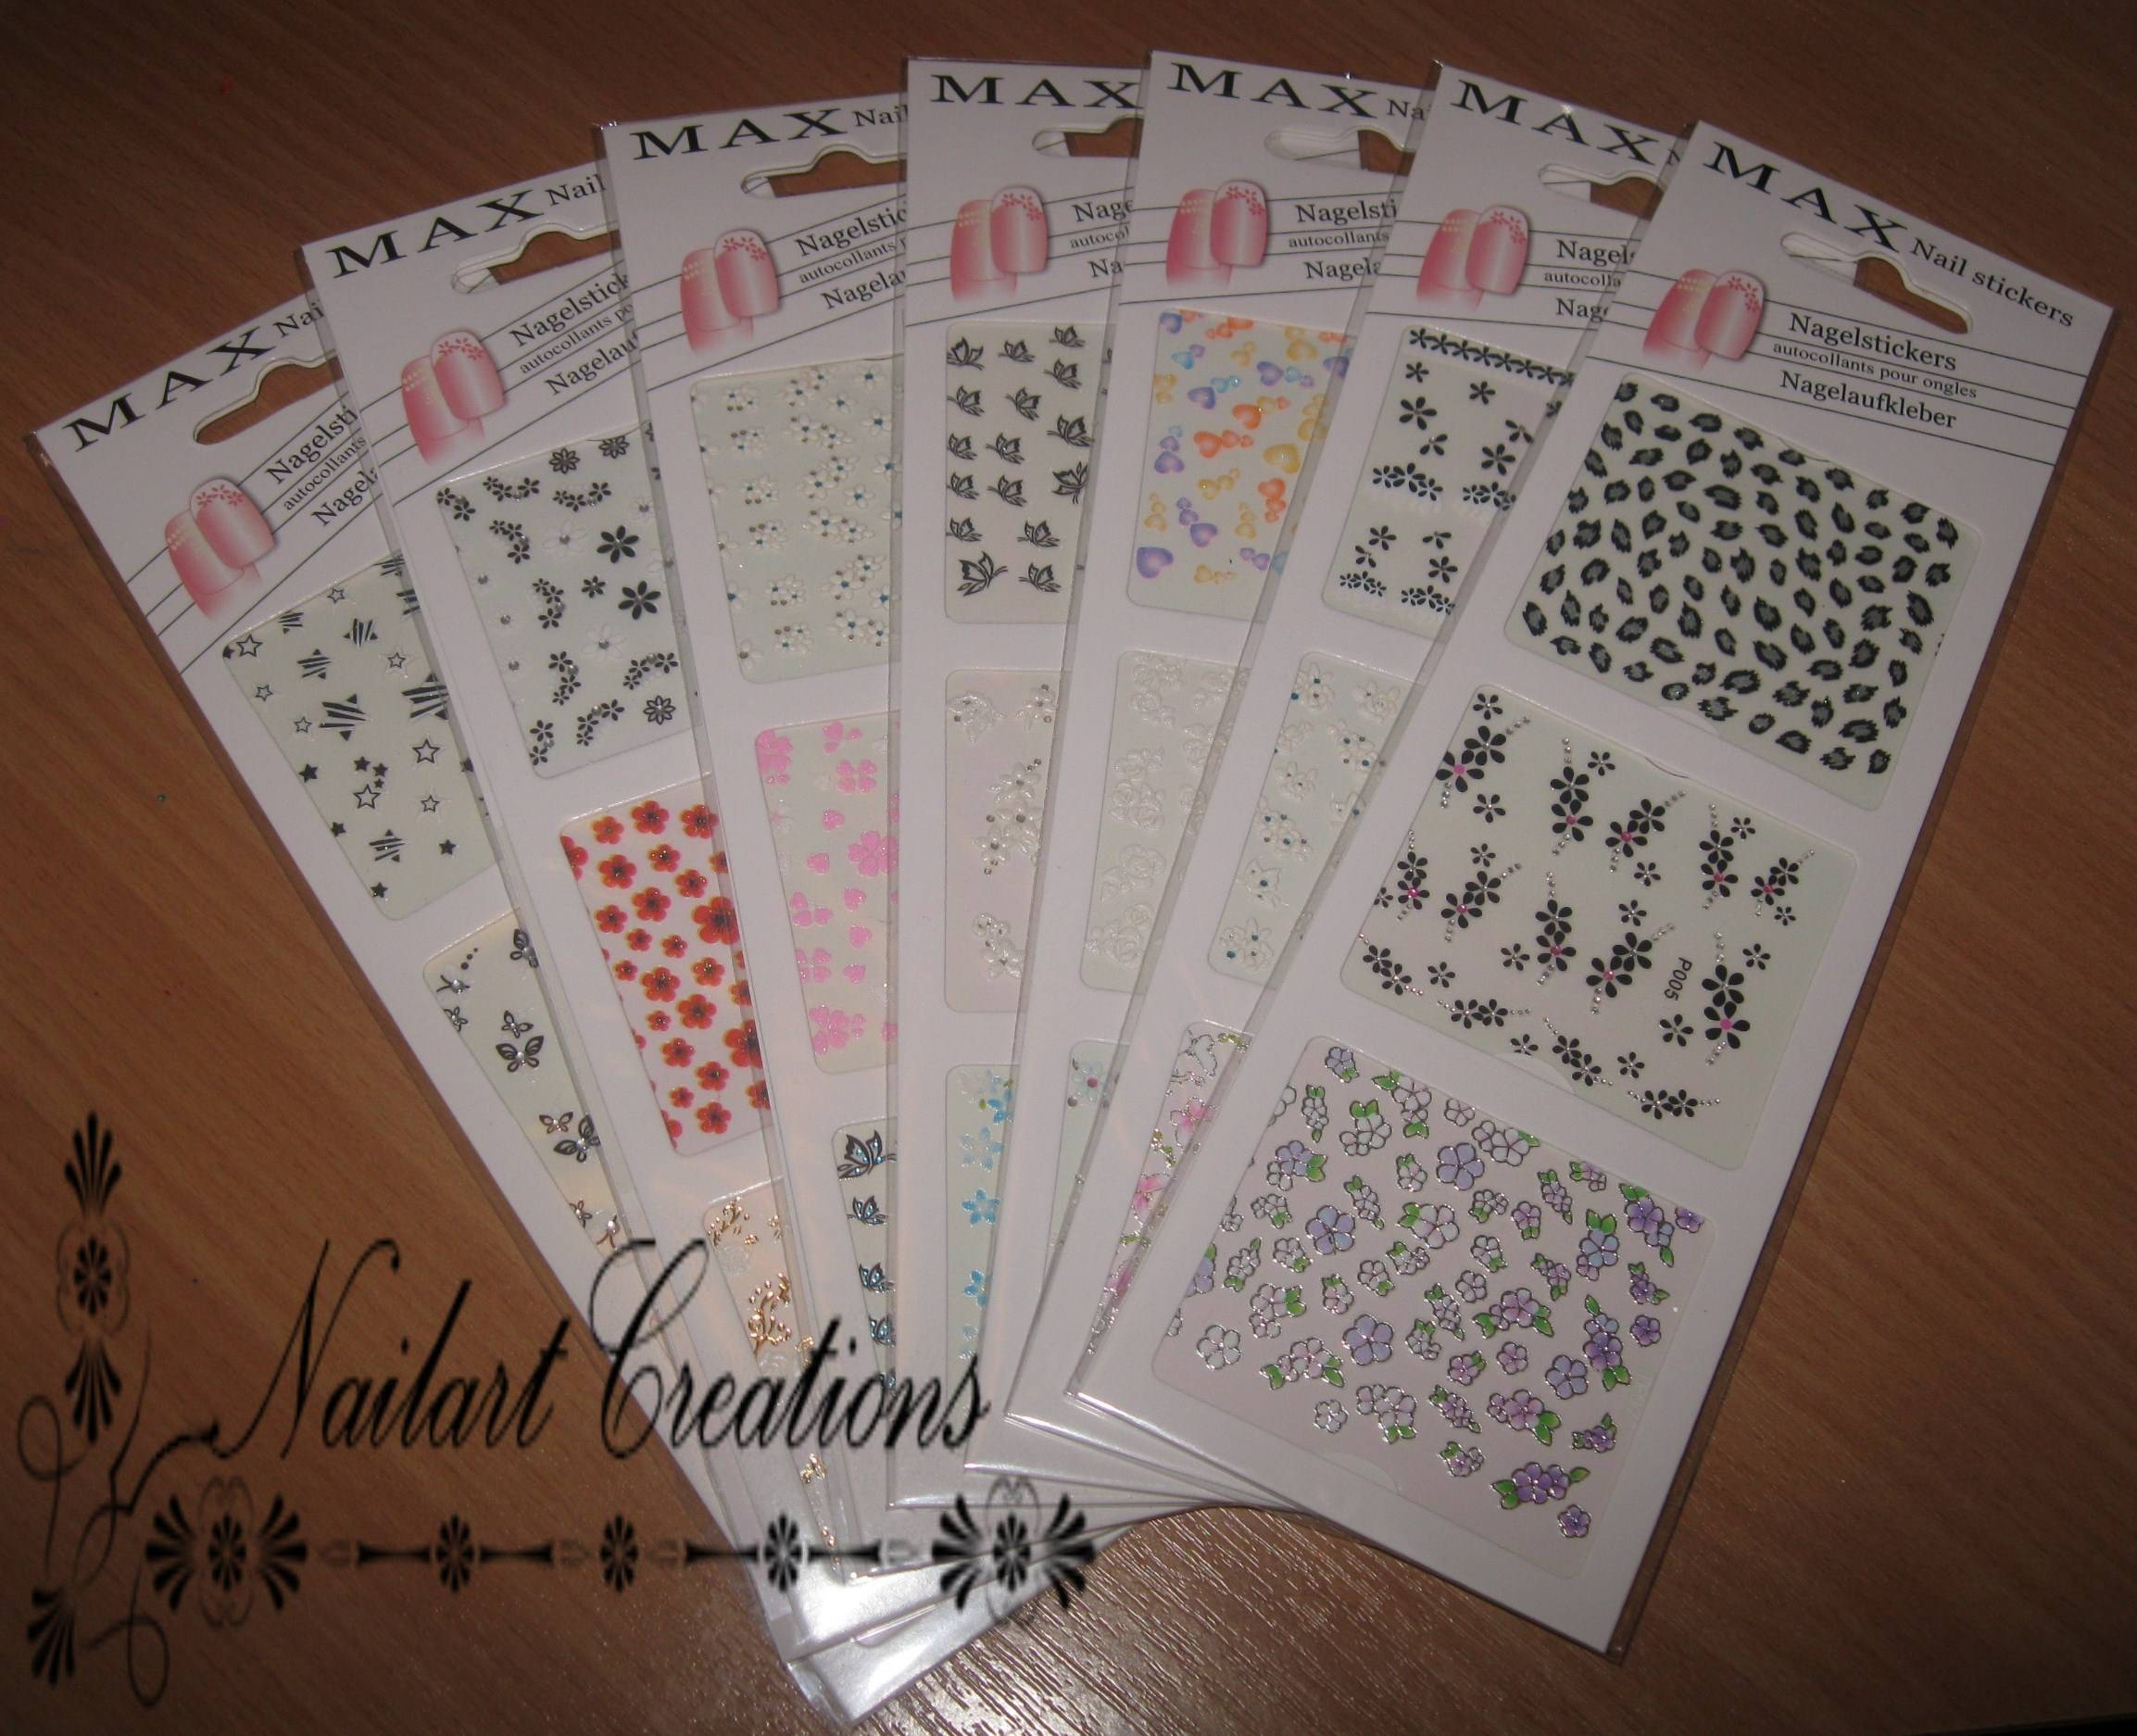 Muurstickers Action Nailart Creations Review Max Nailstickers